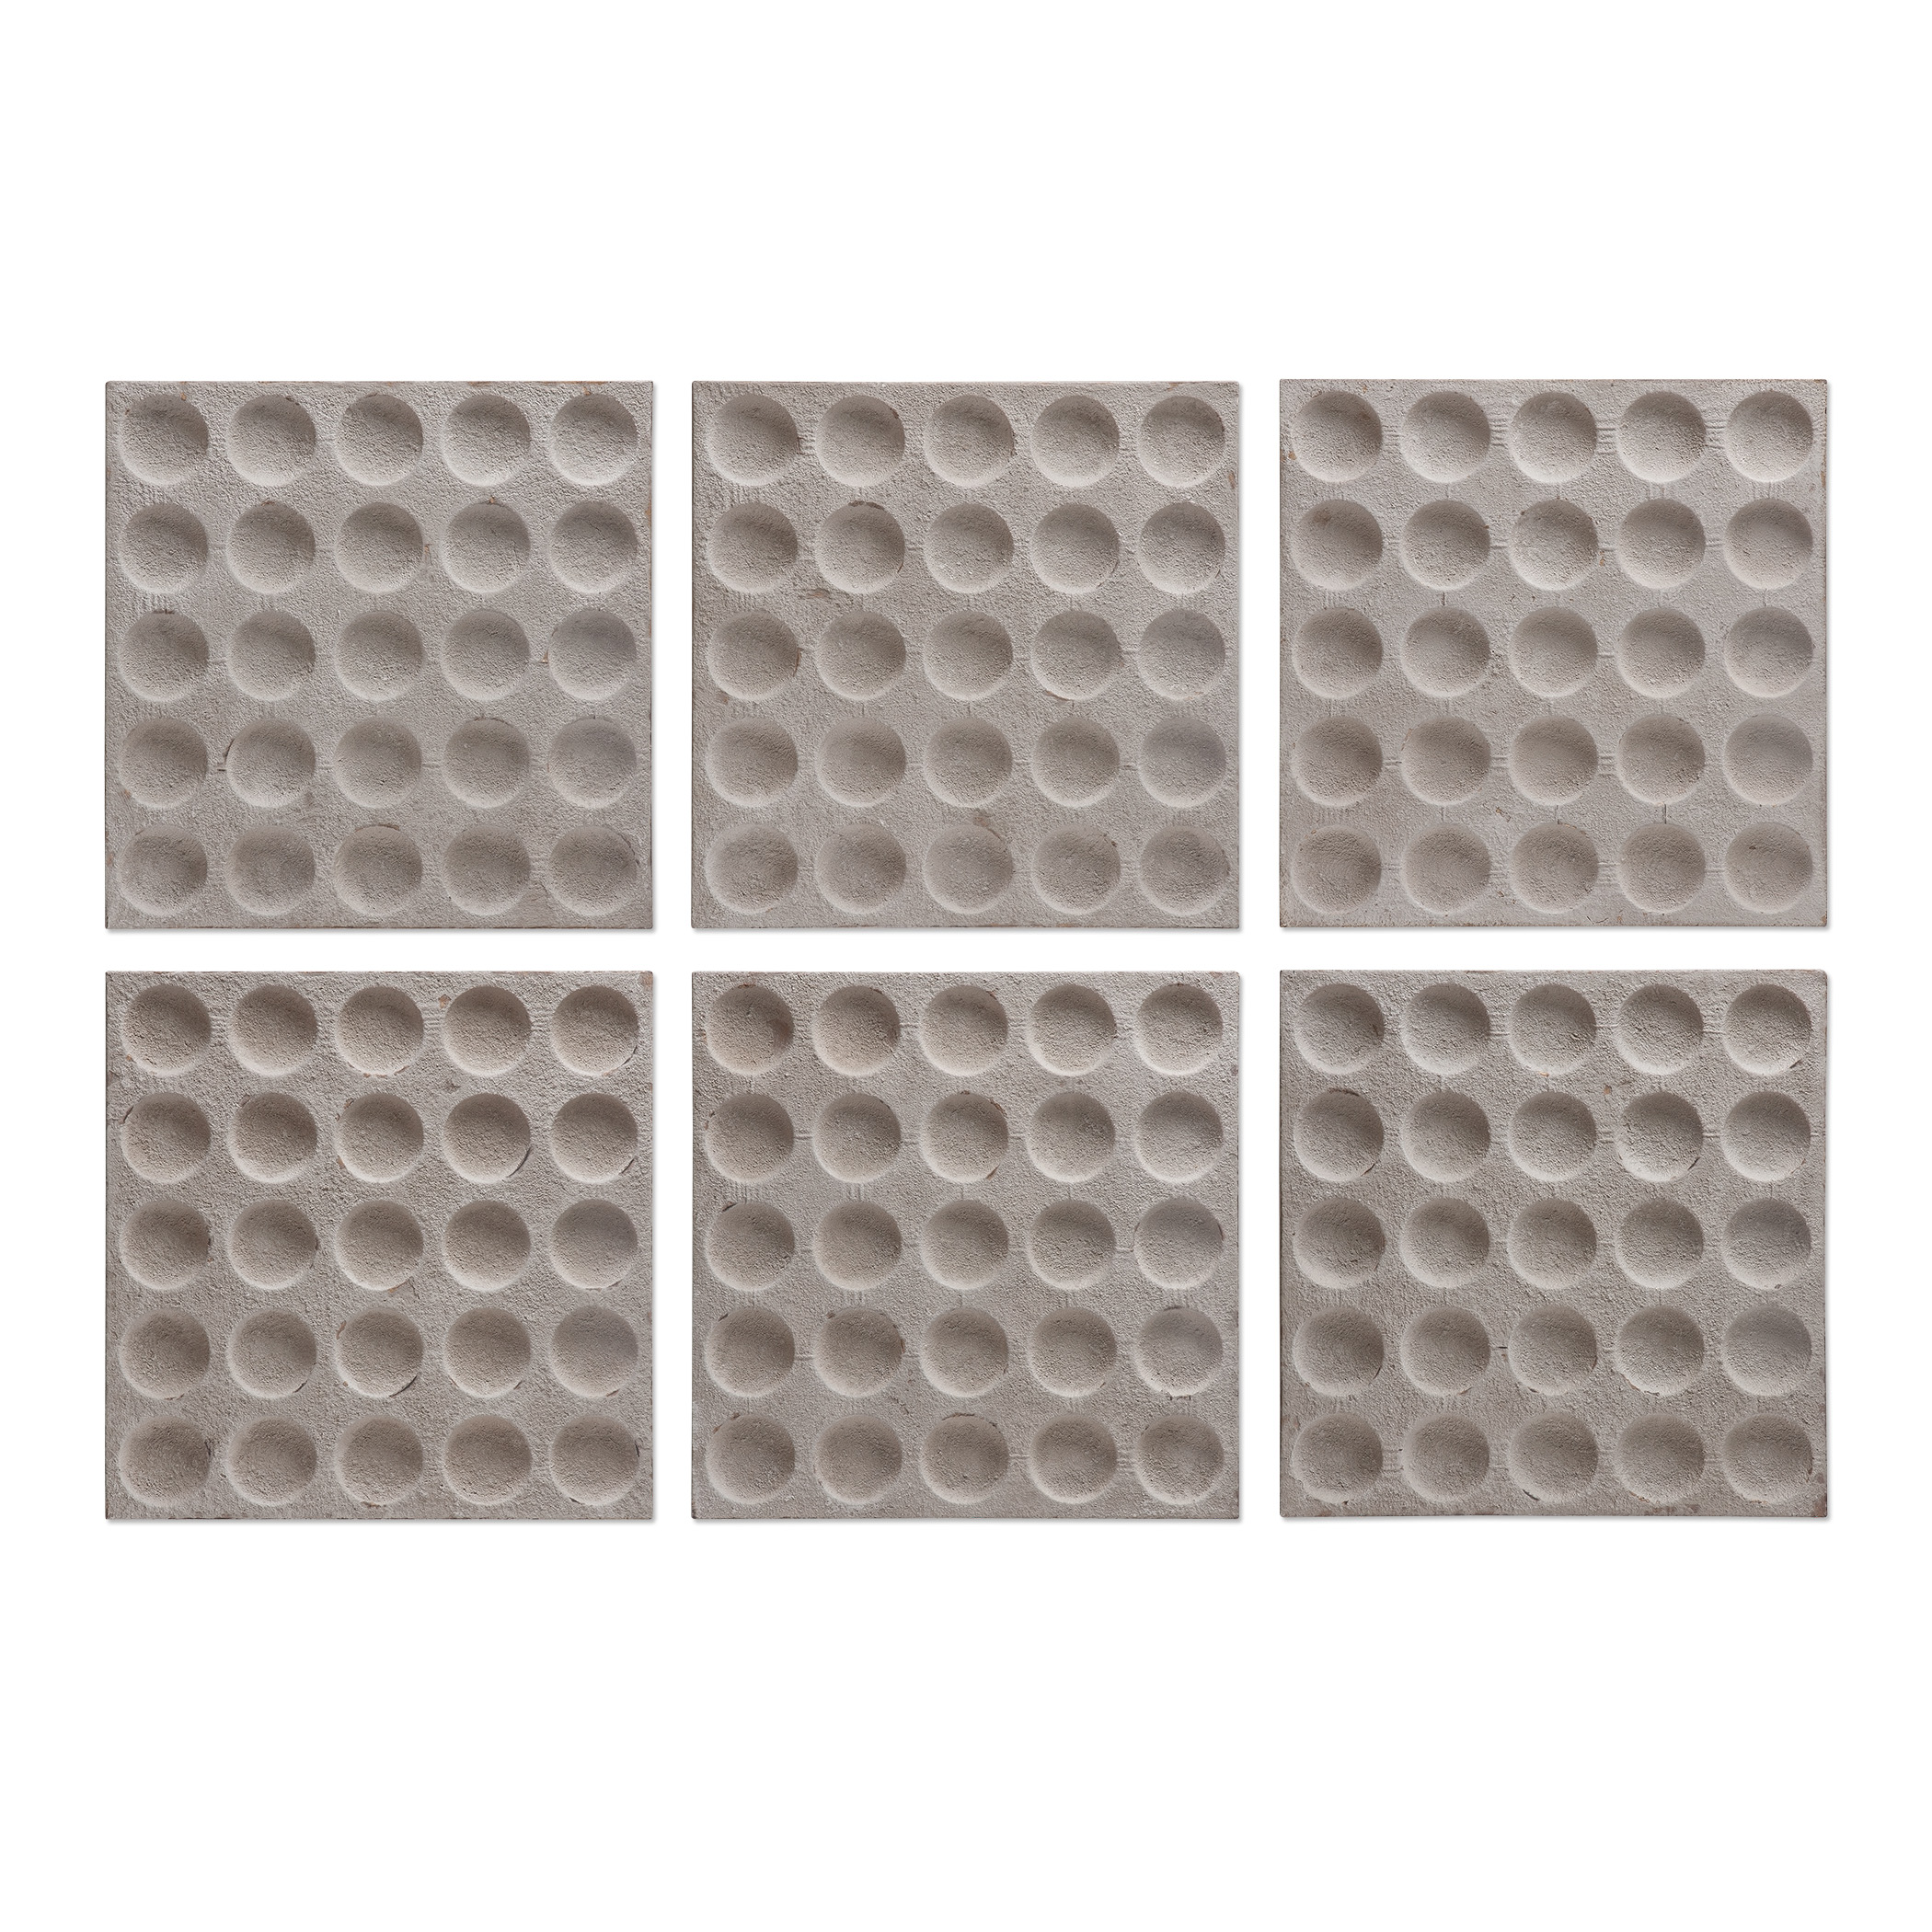 Uttermost Alternative Wall Decor Rogero Squares Wall Art, S/6 - Item Number: 04027